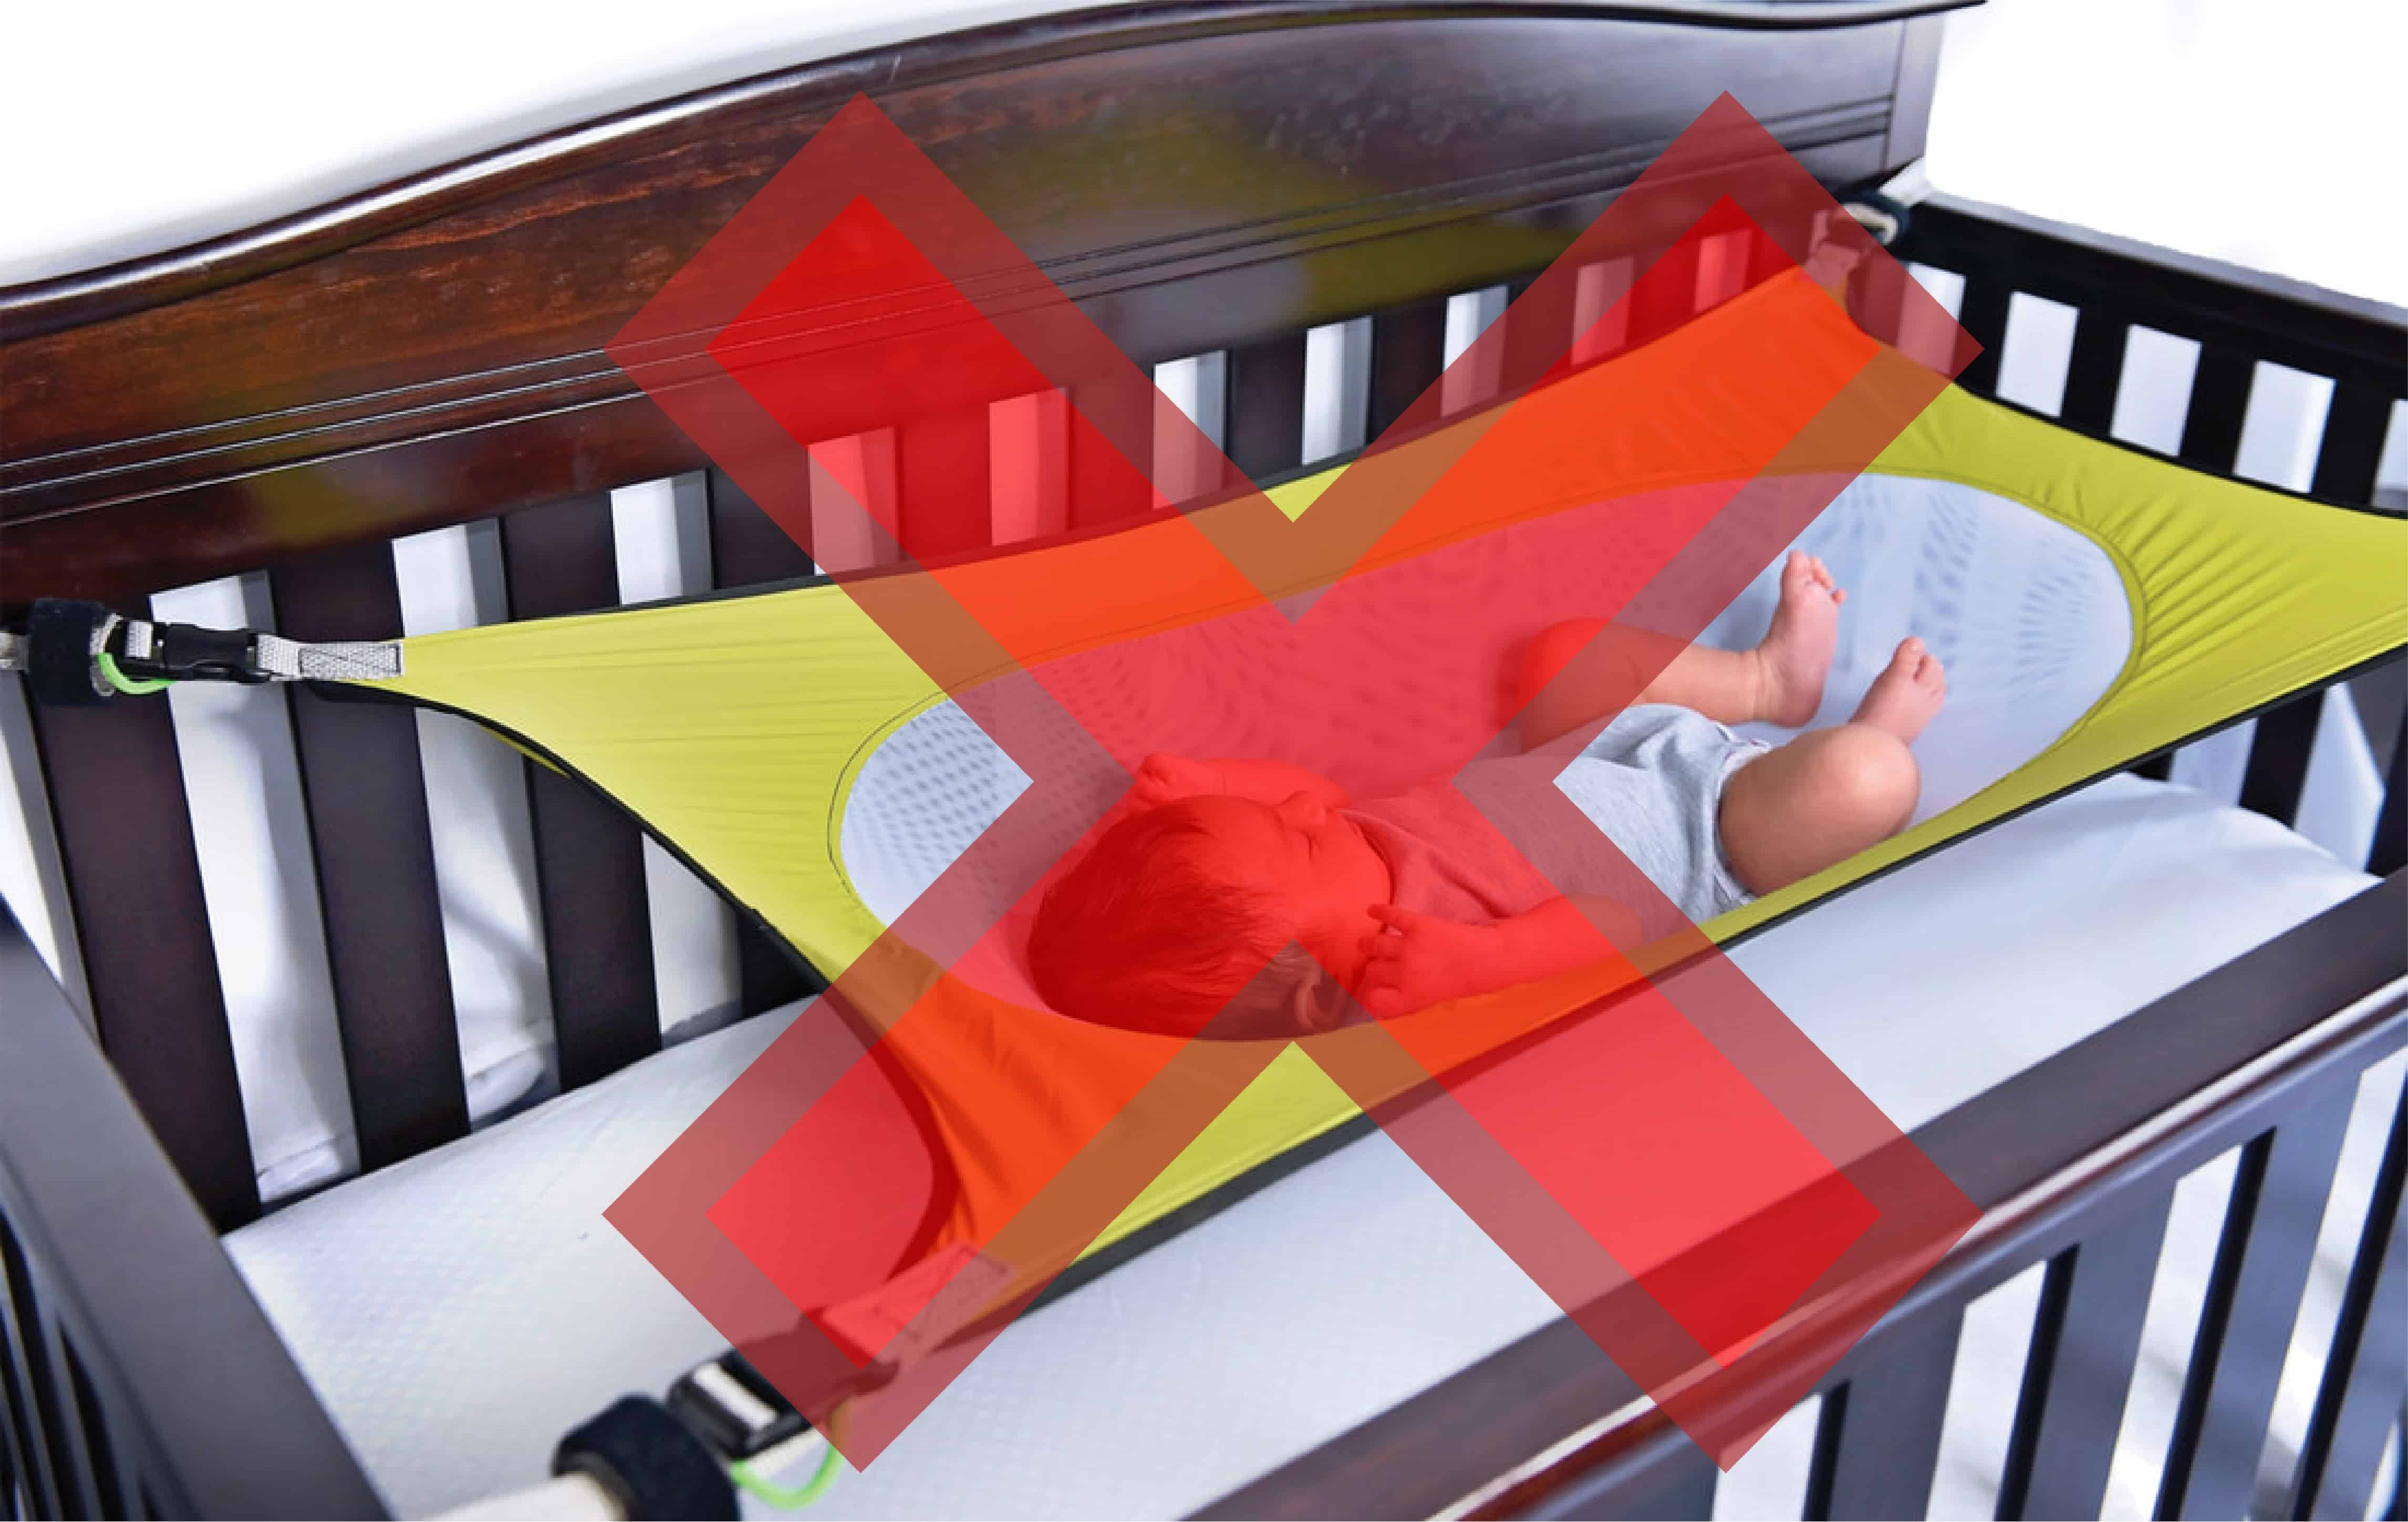 Crescent Womb Baby Crib Hammock Review- Not Recommended X-01